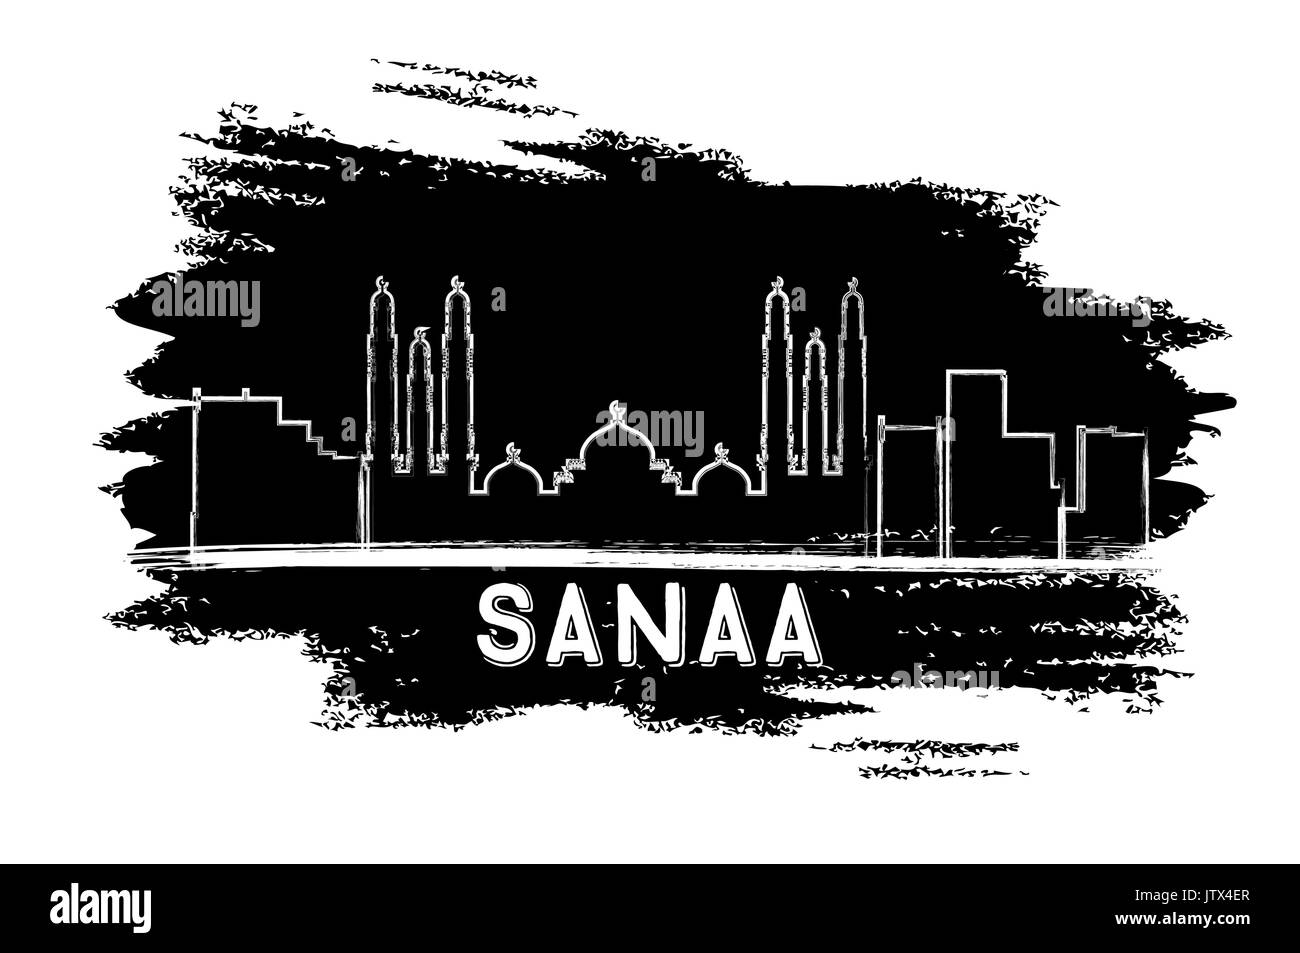 Sanaa (Yemen) Skyline Silhouette. Hand Drawn Sketch. Vector Illustration. Business Travel and Tourism Concept with Modern Architecture. - Stock Image